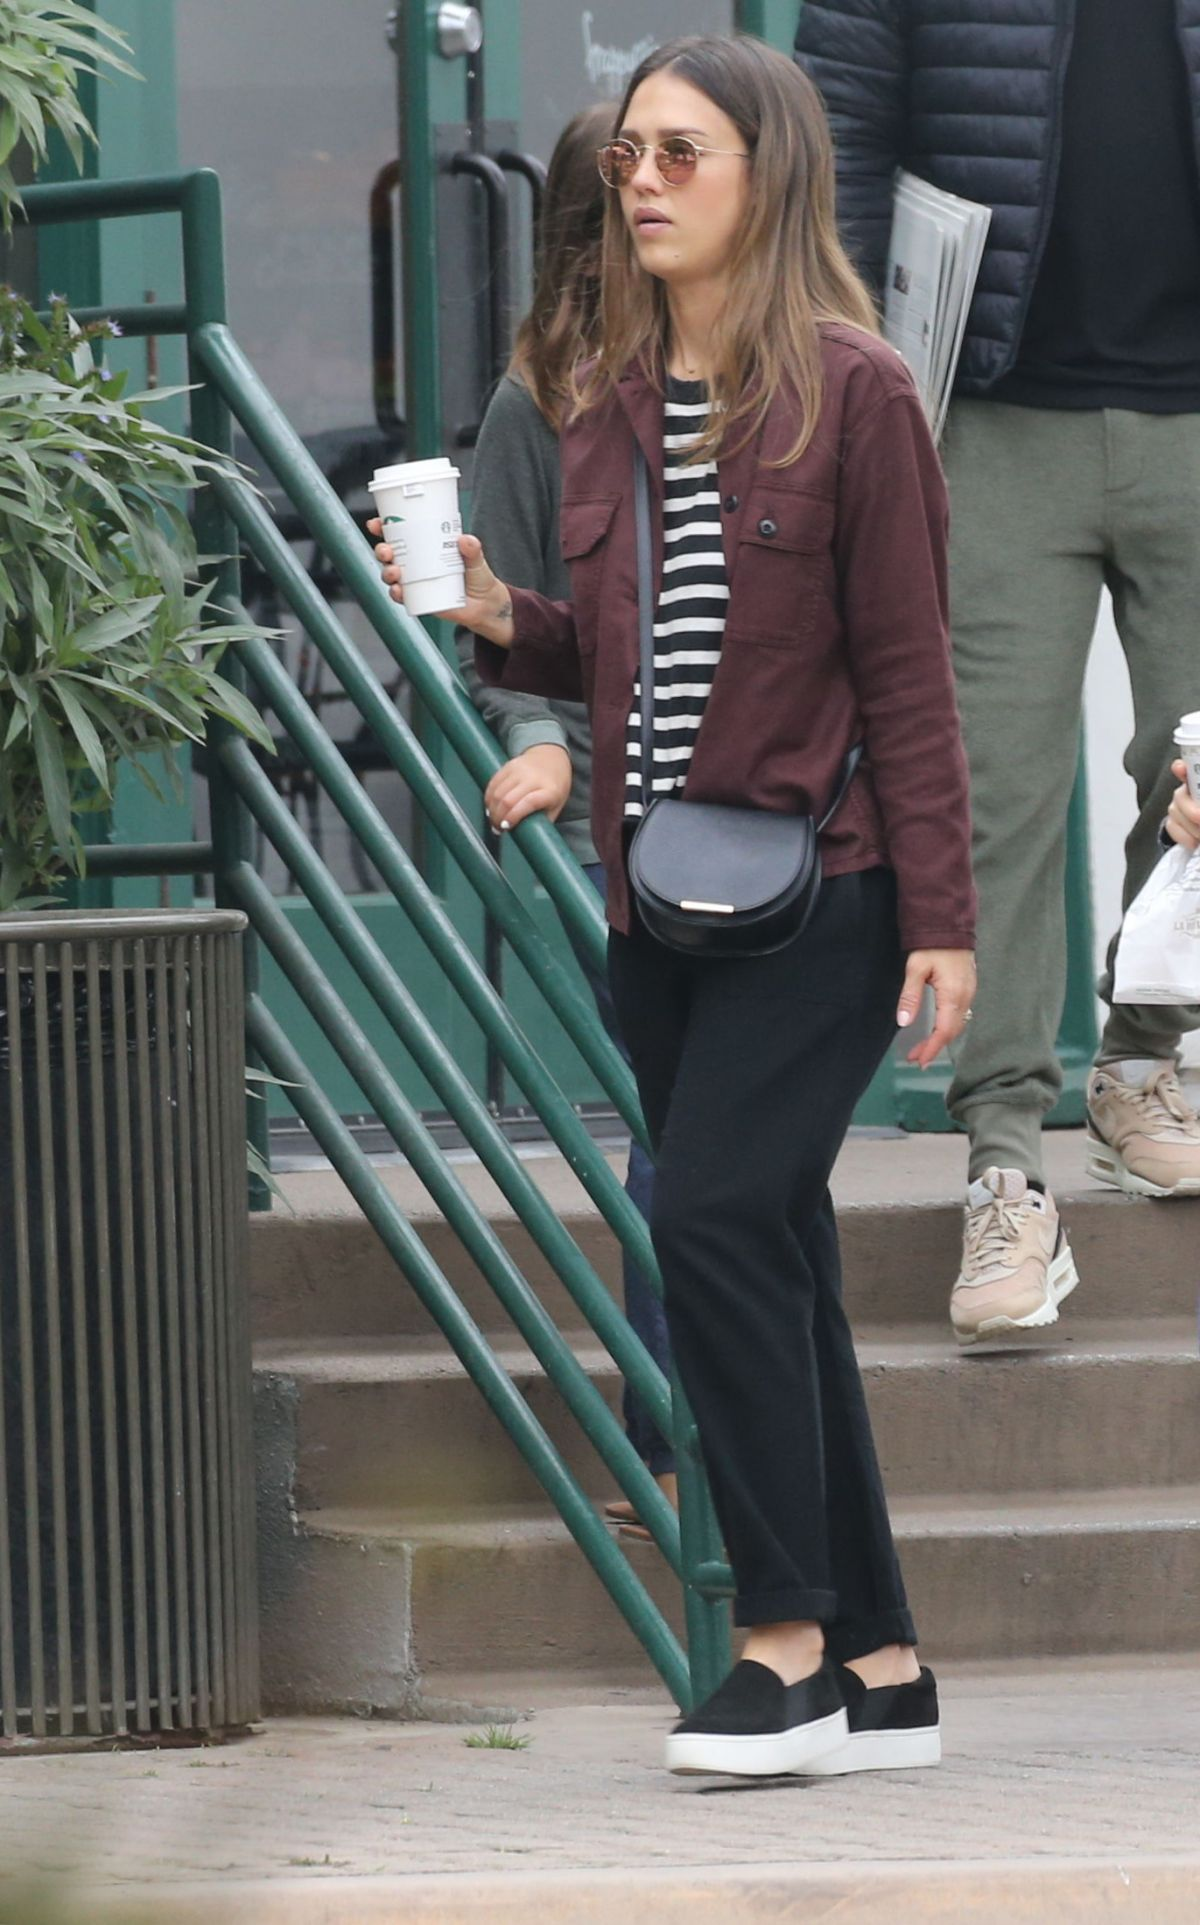 JESSICA ALBA Out for Cofffee in Malibu 07/02/2017